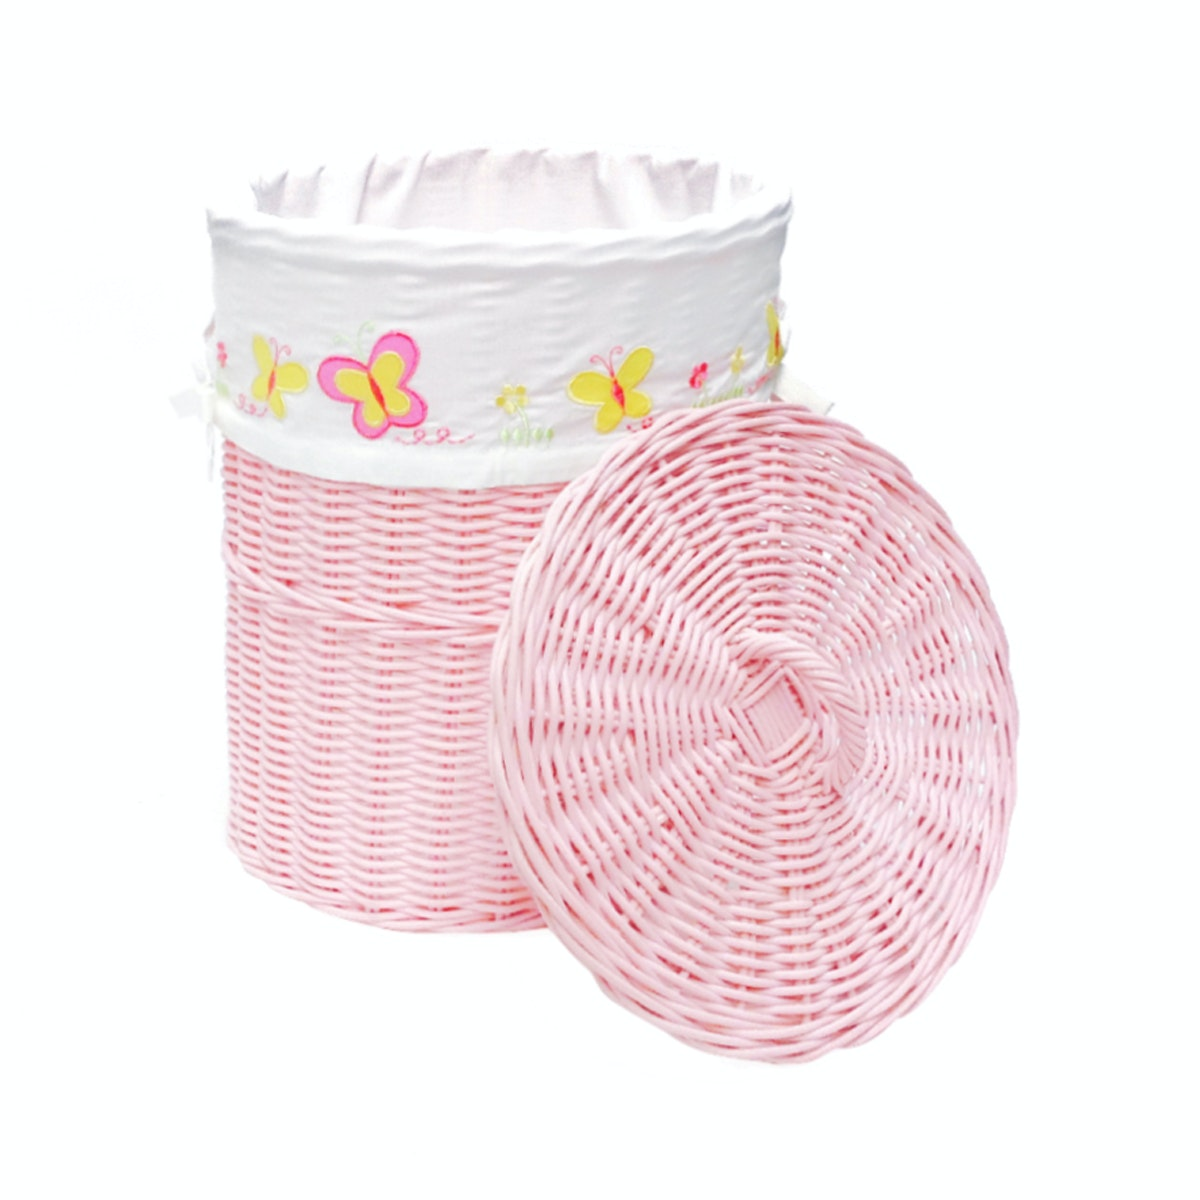 The Storage Shoppe Hamper Mini Pink